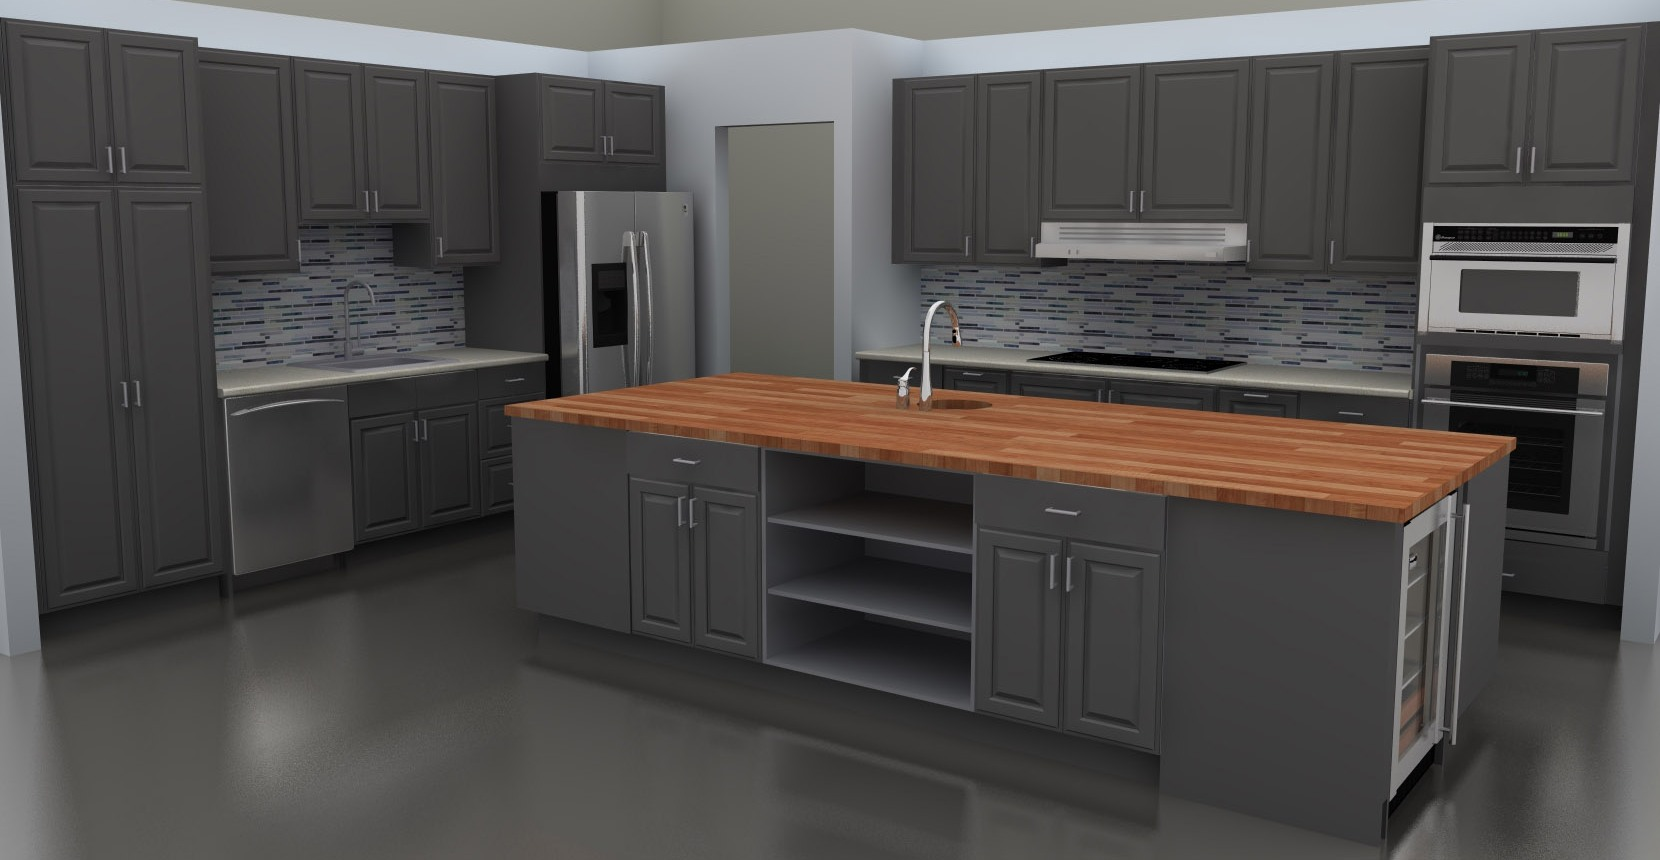 grey kitchen cabinets blanco silgranit sink stylish lidingo gray doors for a new ikea